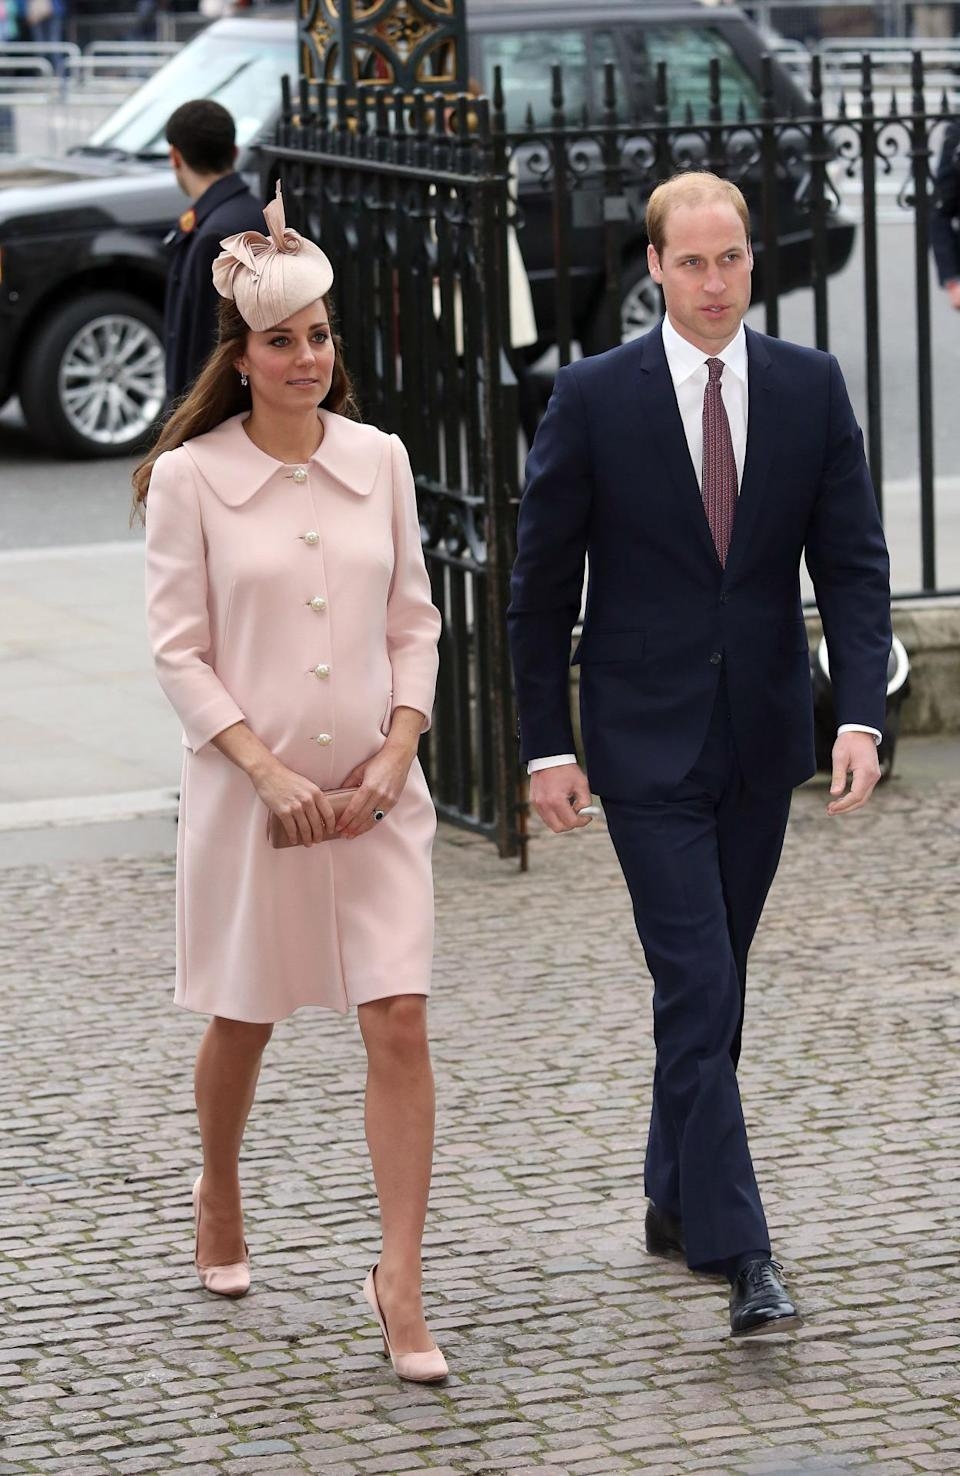 <p>Kate chose a soft pink Alexander McQueen ensemble and coordinating Jane Taylor hat for the Commonwealth Day service. She carried a pink Prada clutch and wore pink Prada pumps too.</p><p><i>[Photo: PA]</i></p>